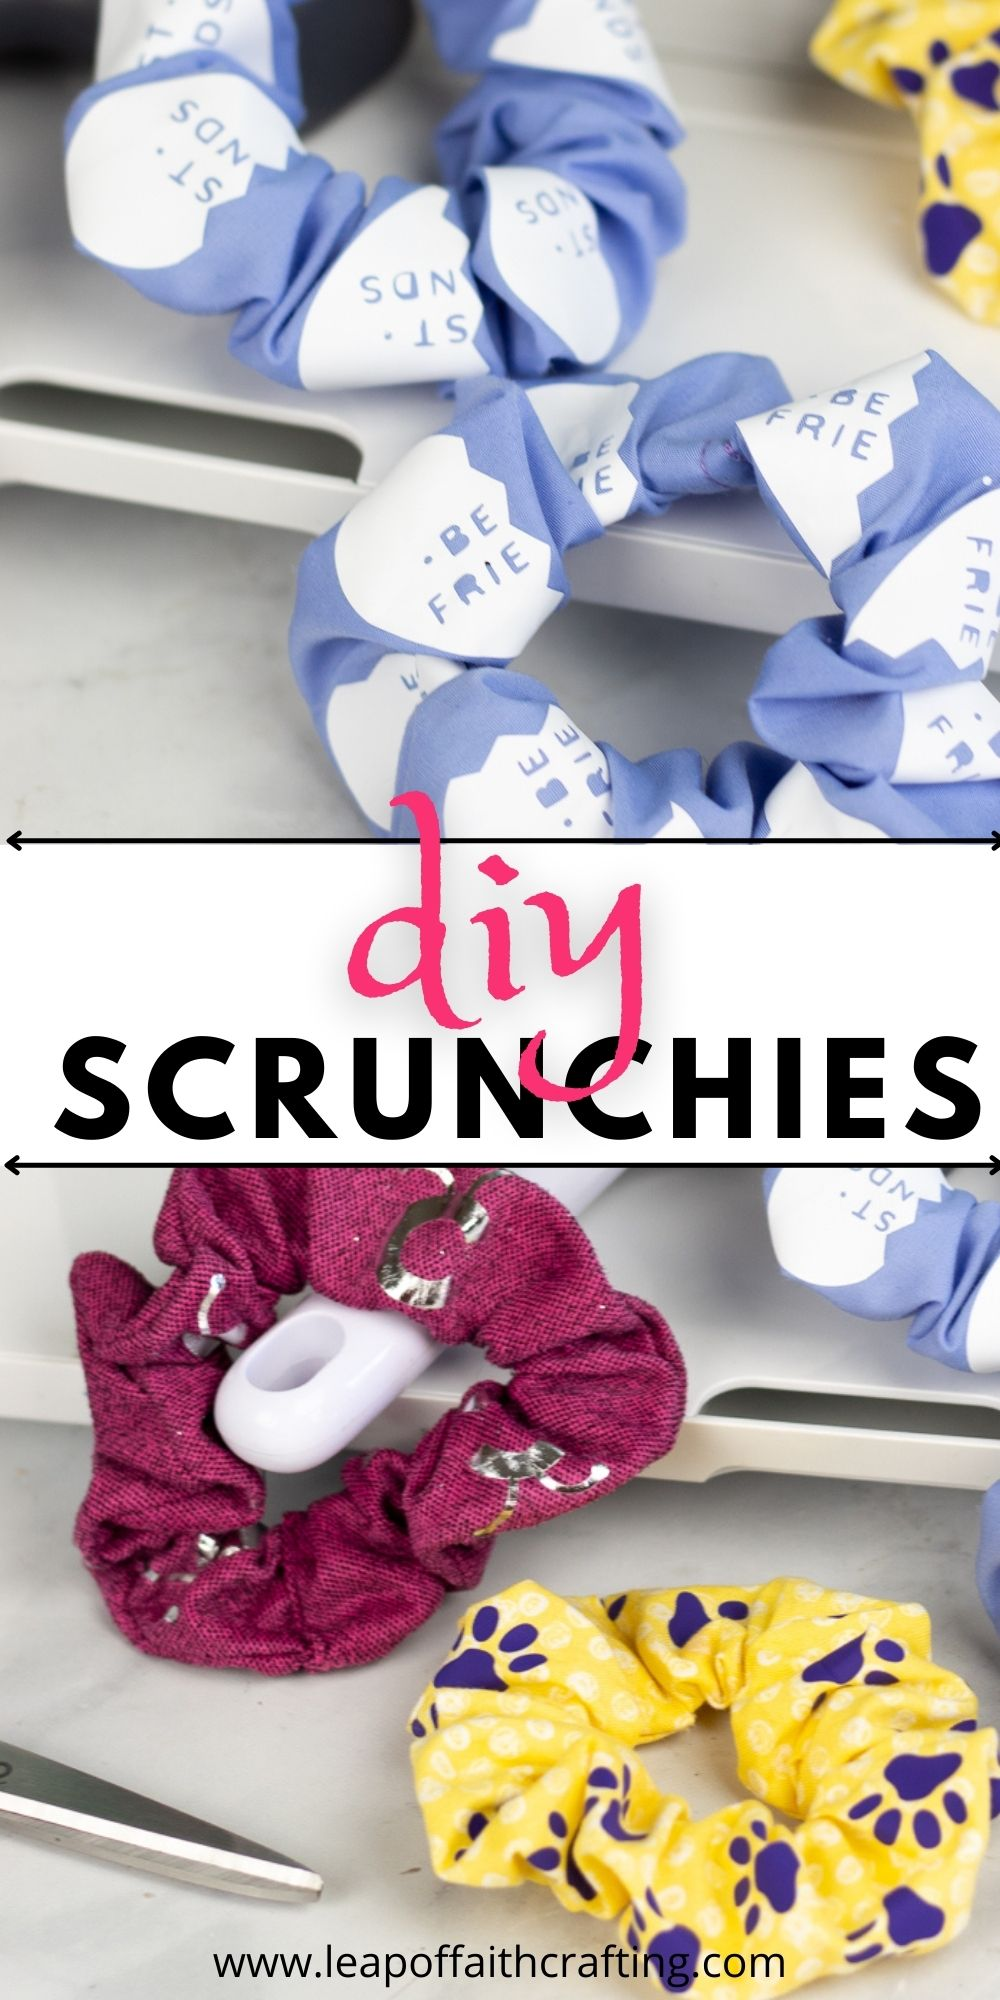 diy scrunchies tutorial